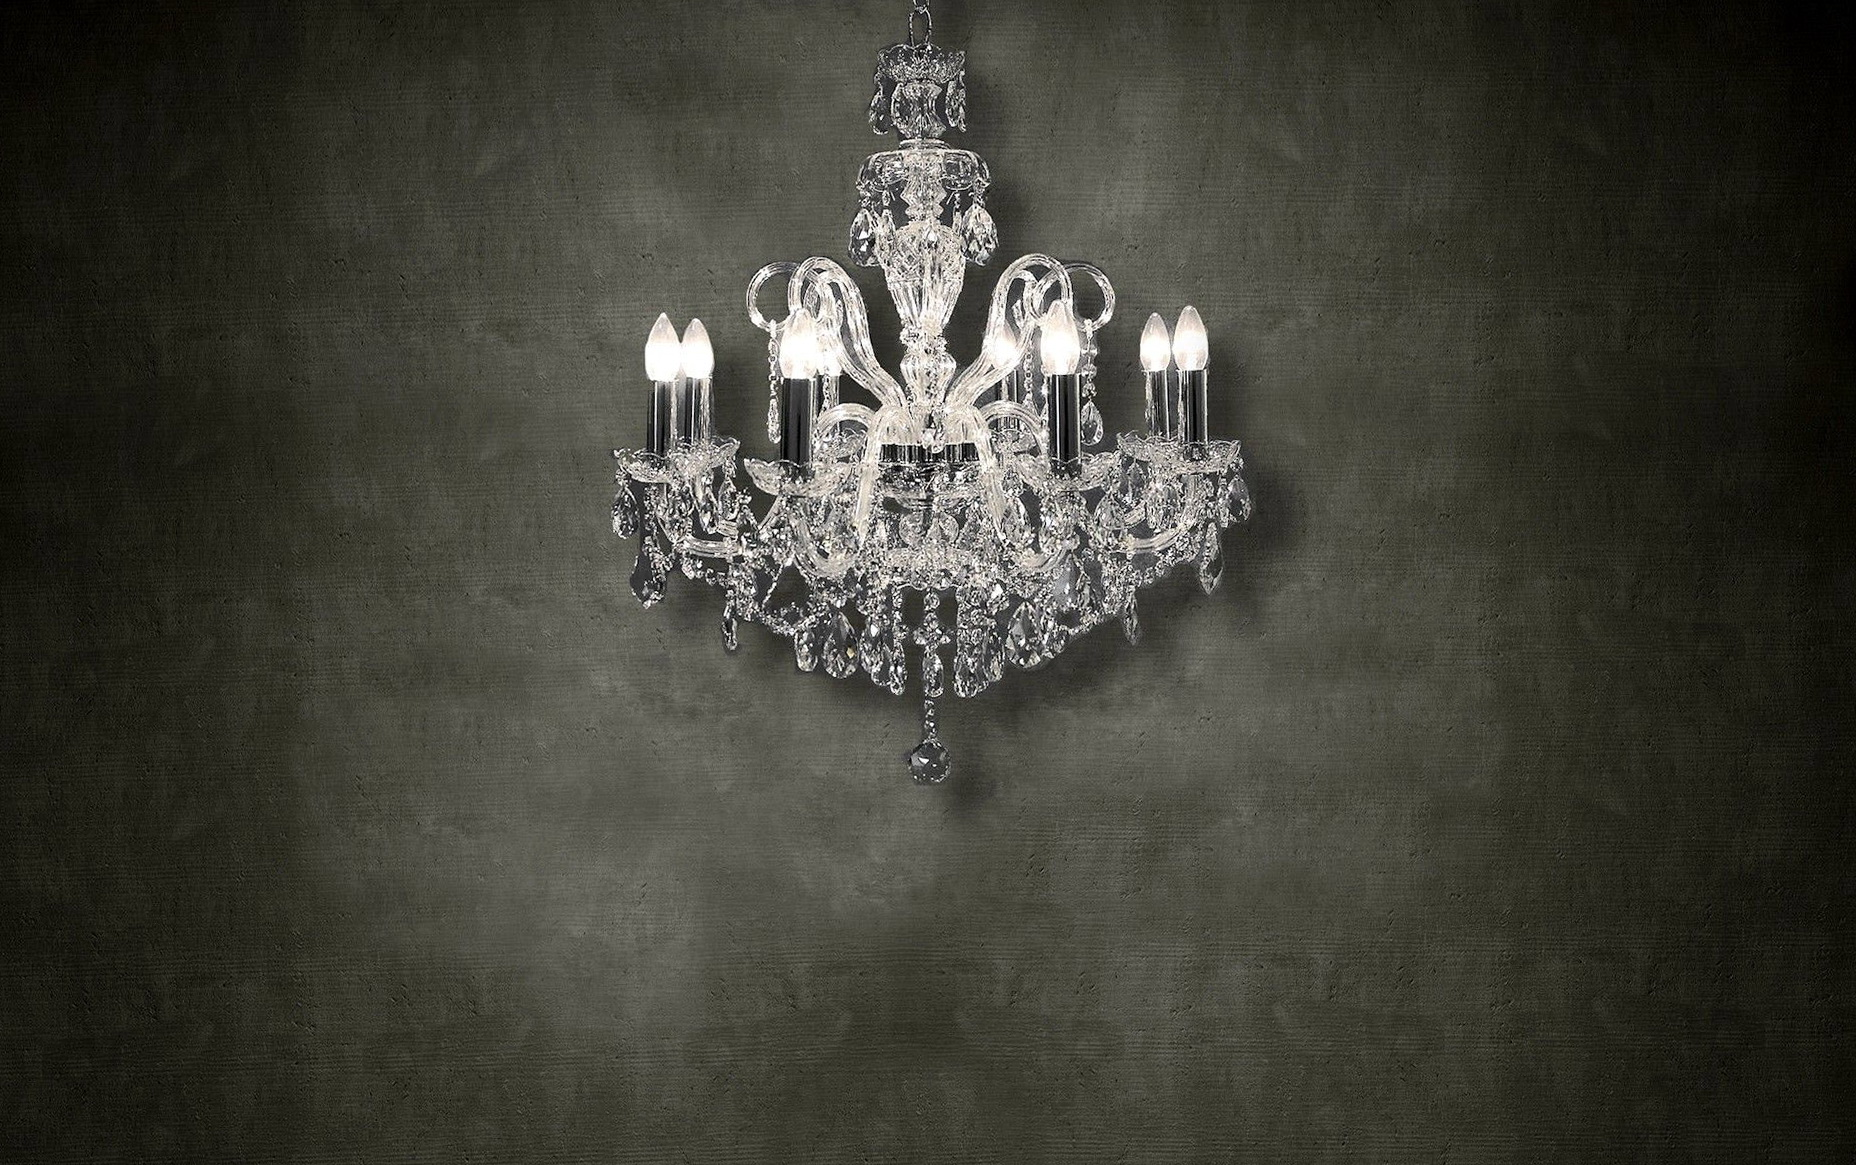 Black And White Chandelier Background Home Design Ideas